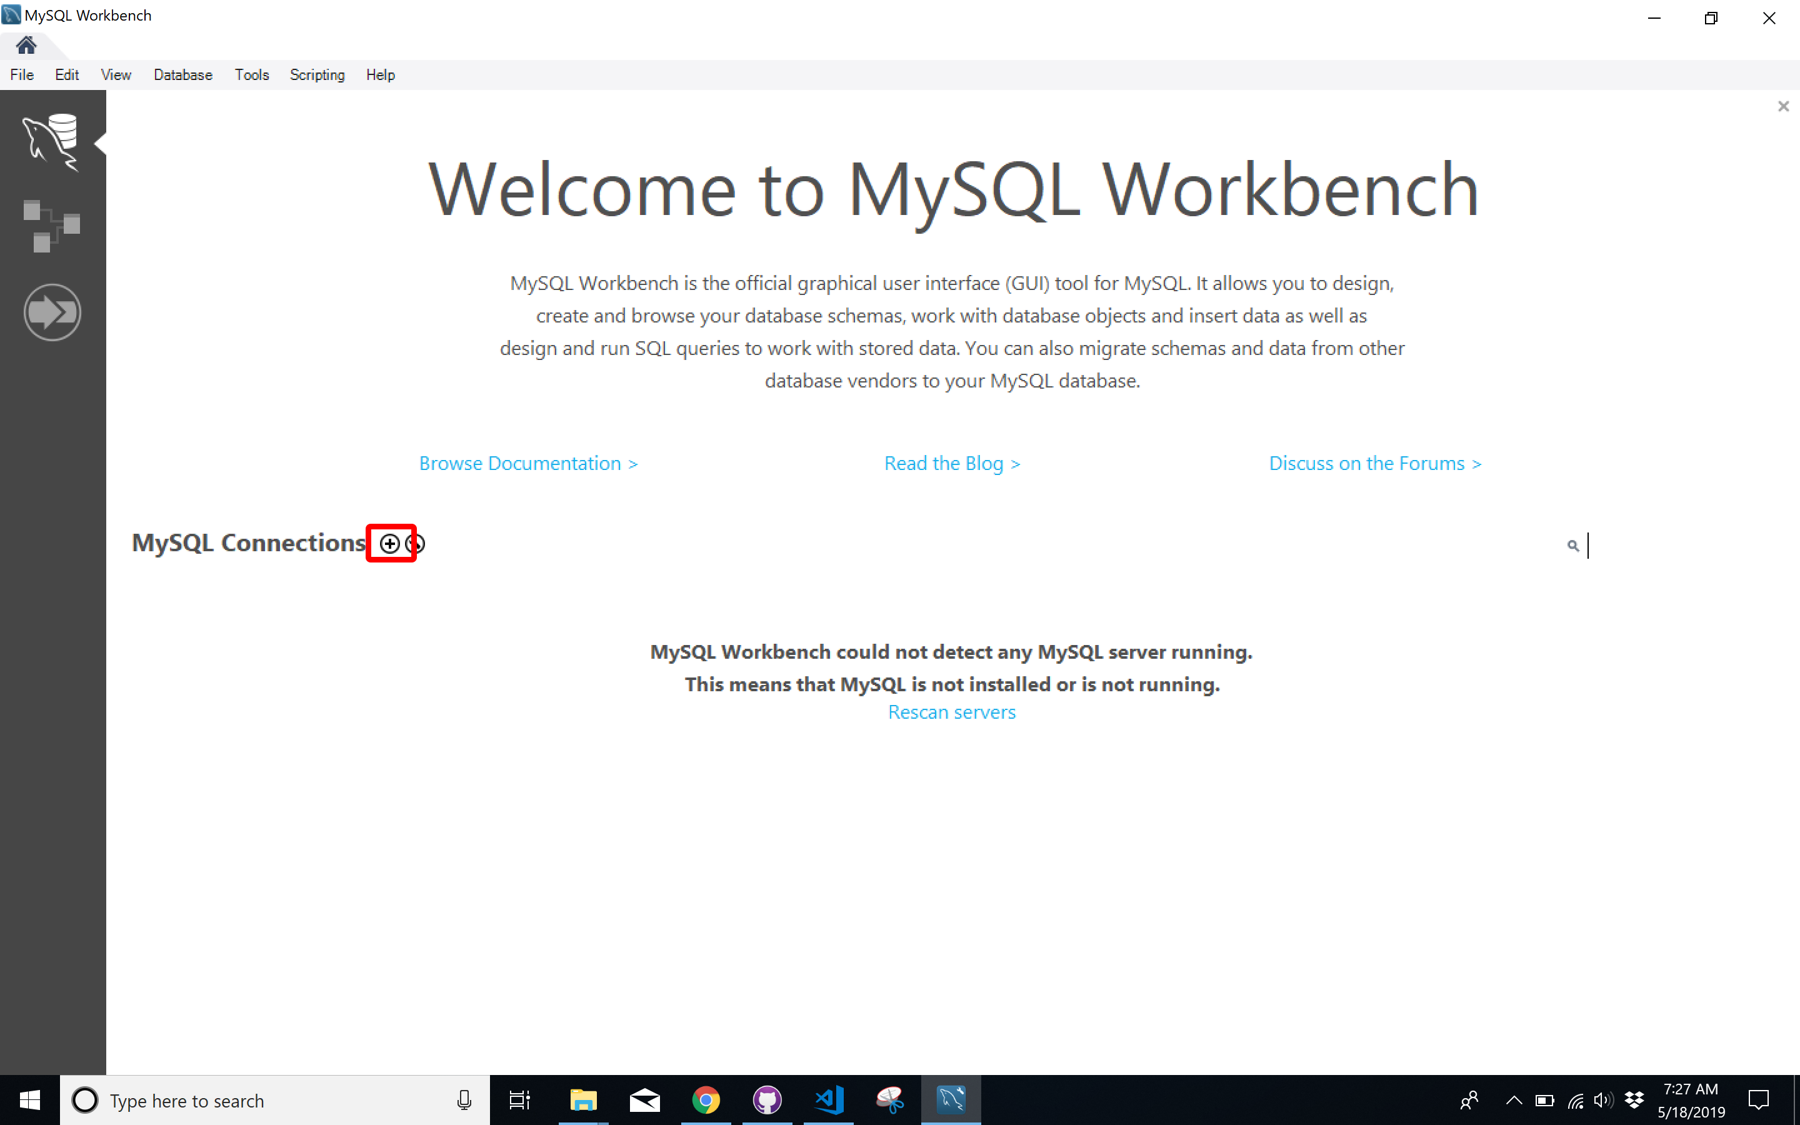 mysql-workbench-welcome-screen